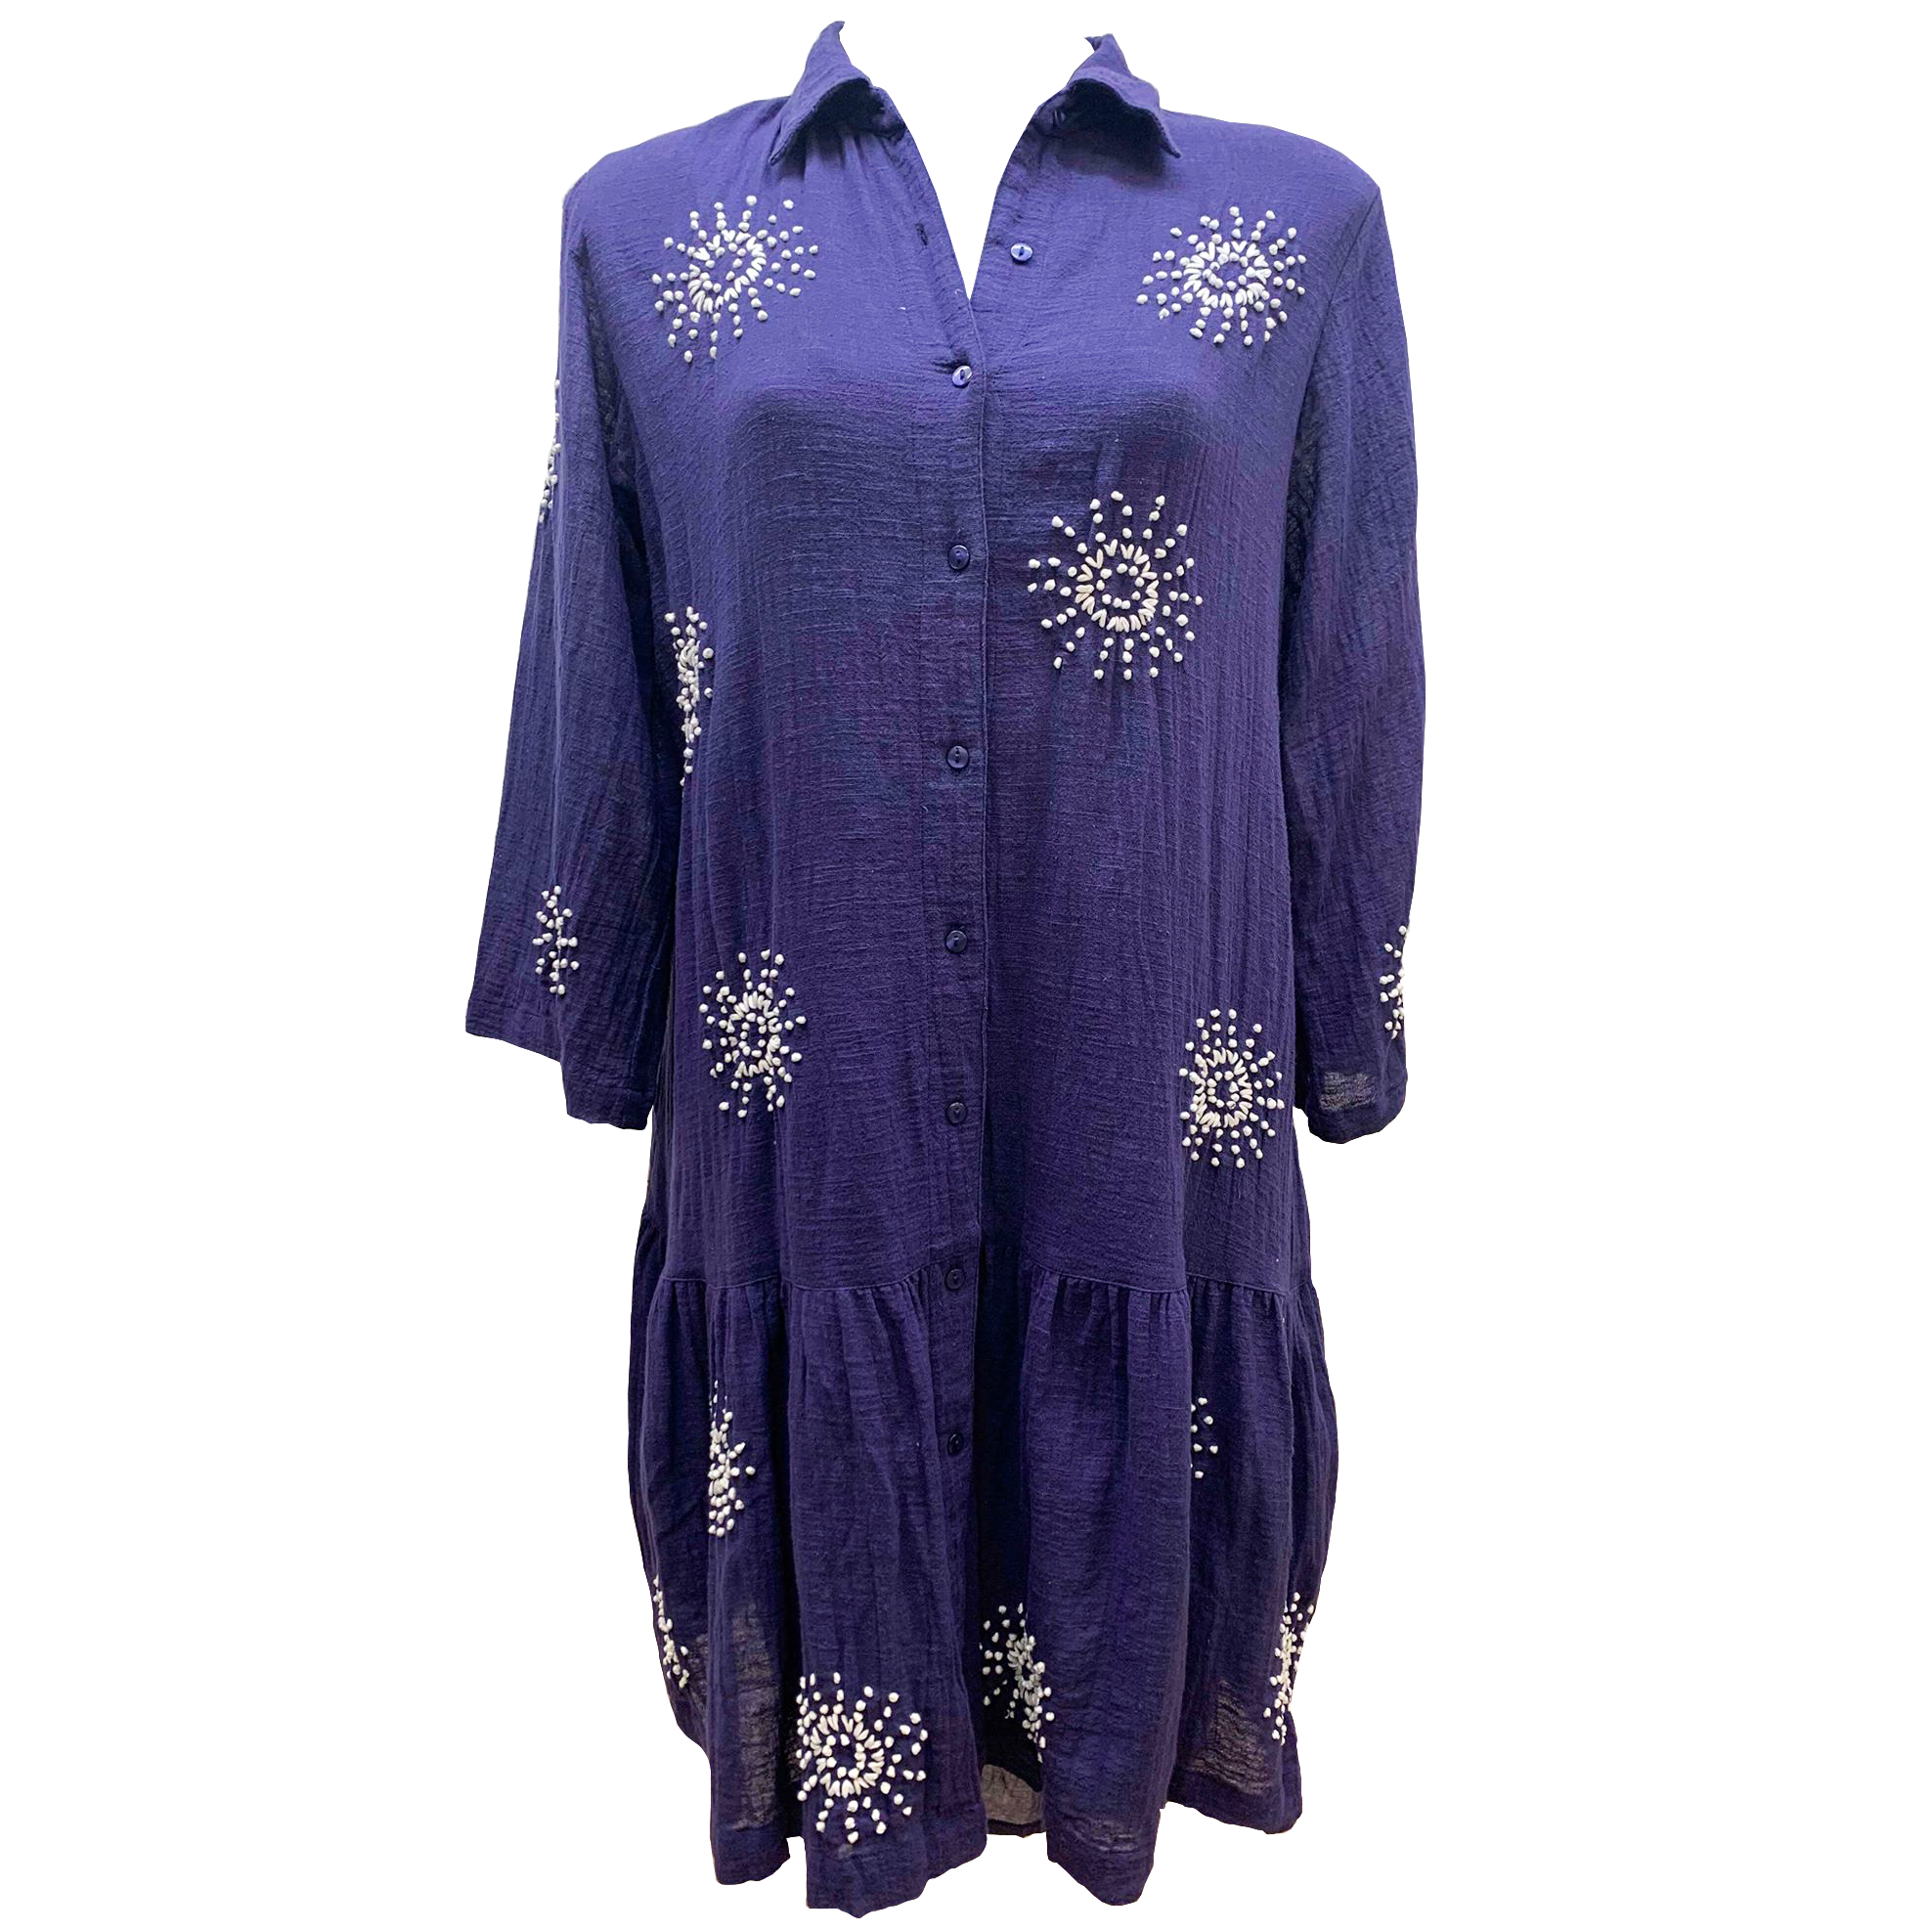 Lula Soul Symi Tunic in Navy